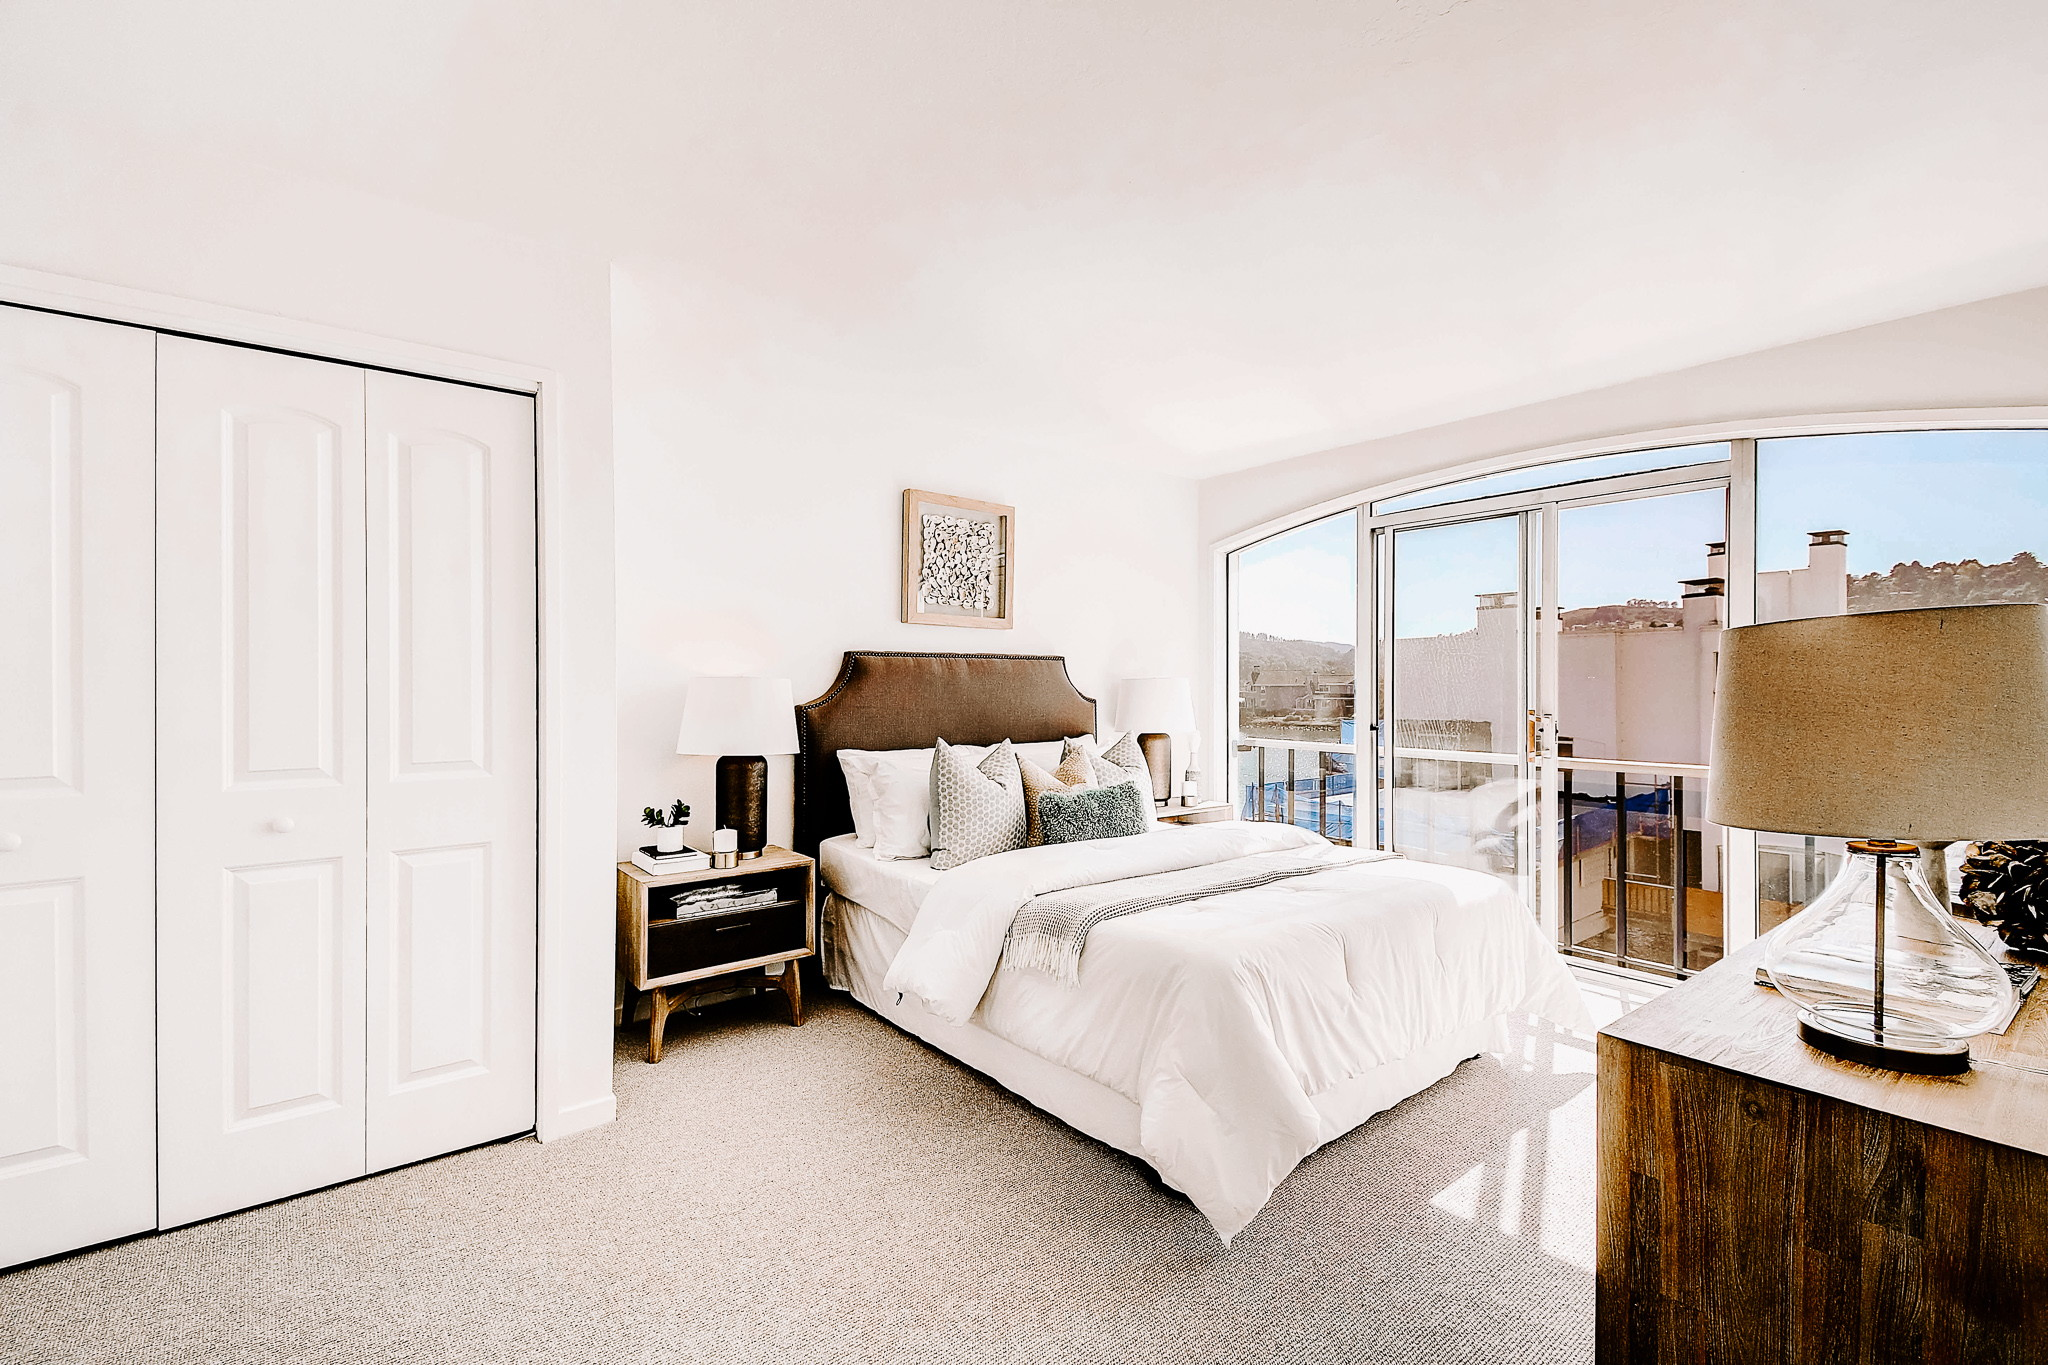 3223 Shelter Bay Avenue-24 Mill Valley Top Realtor - Allie Fornesi on Own Marin County's #1 Real Estate Team.jpg